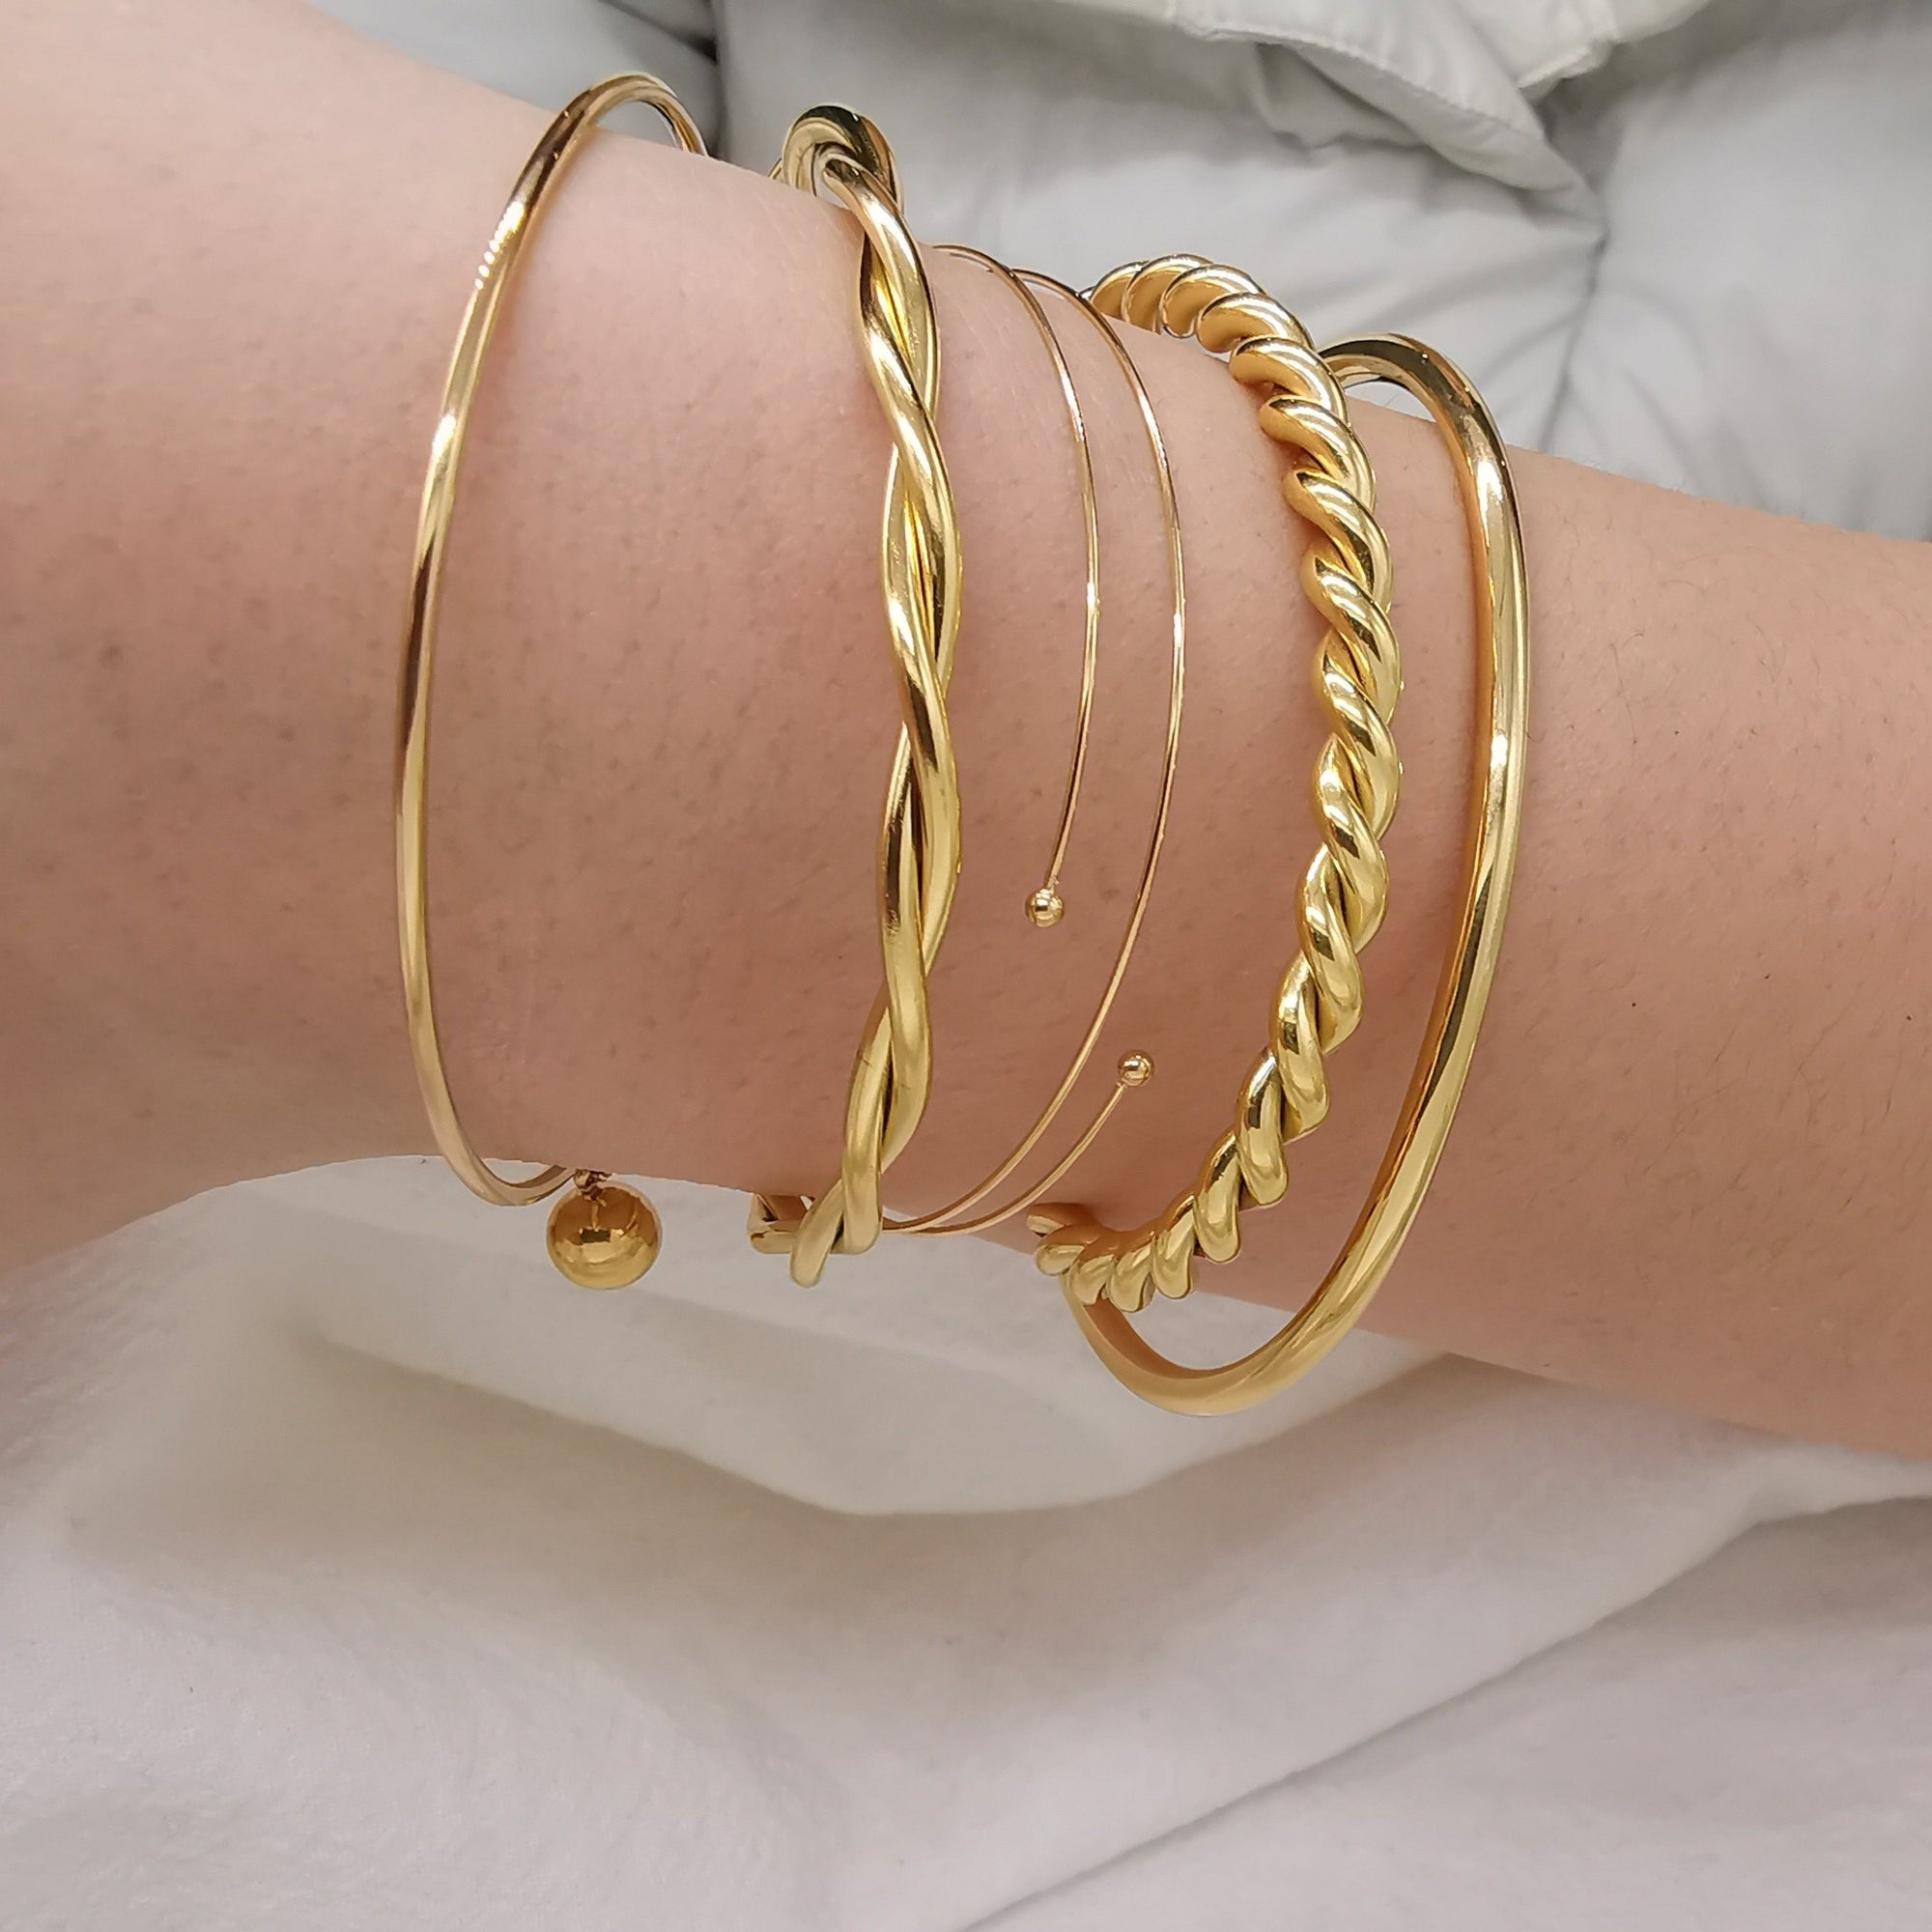 Five simple Bracelets - Bolino Studio - Minimalist Jewellery